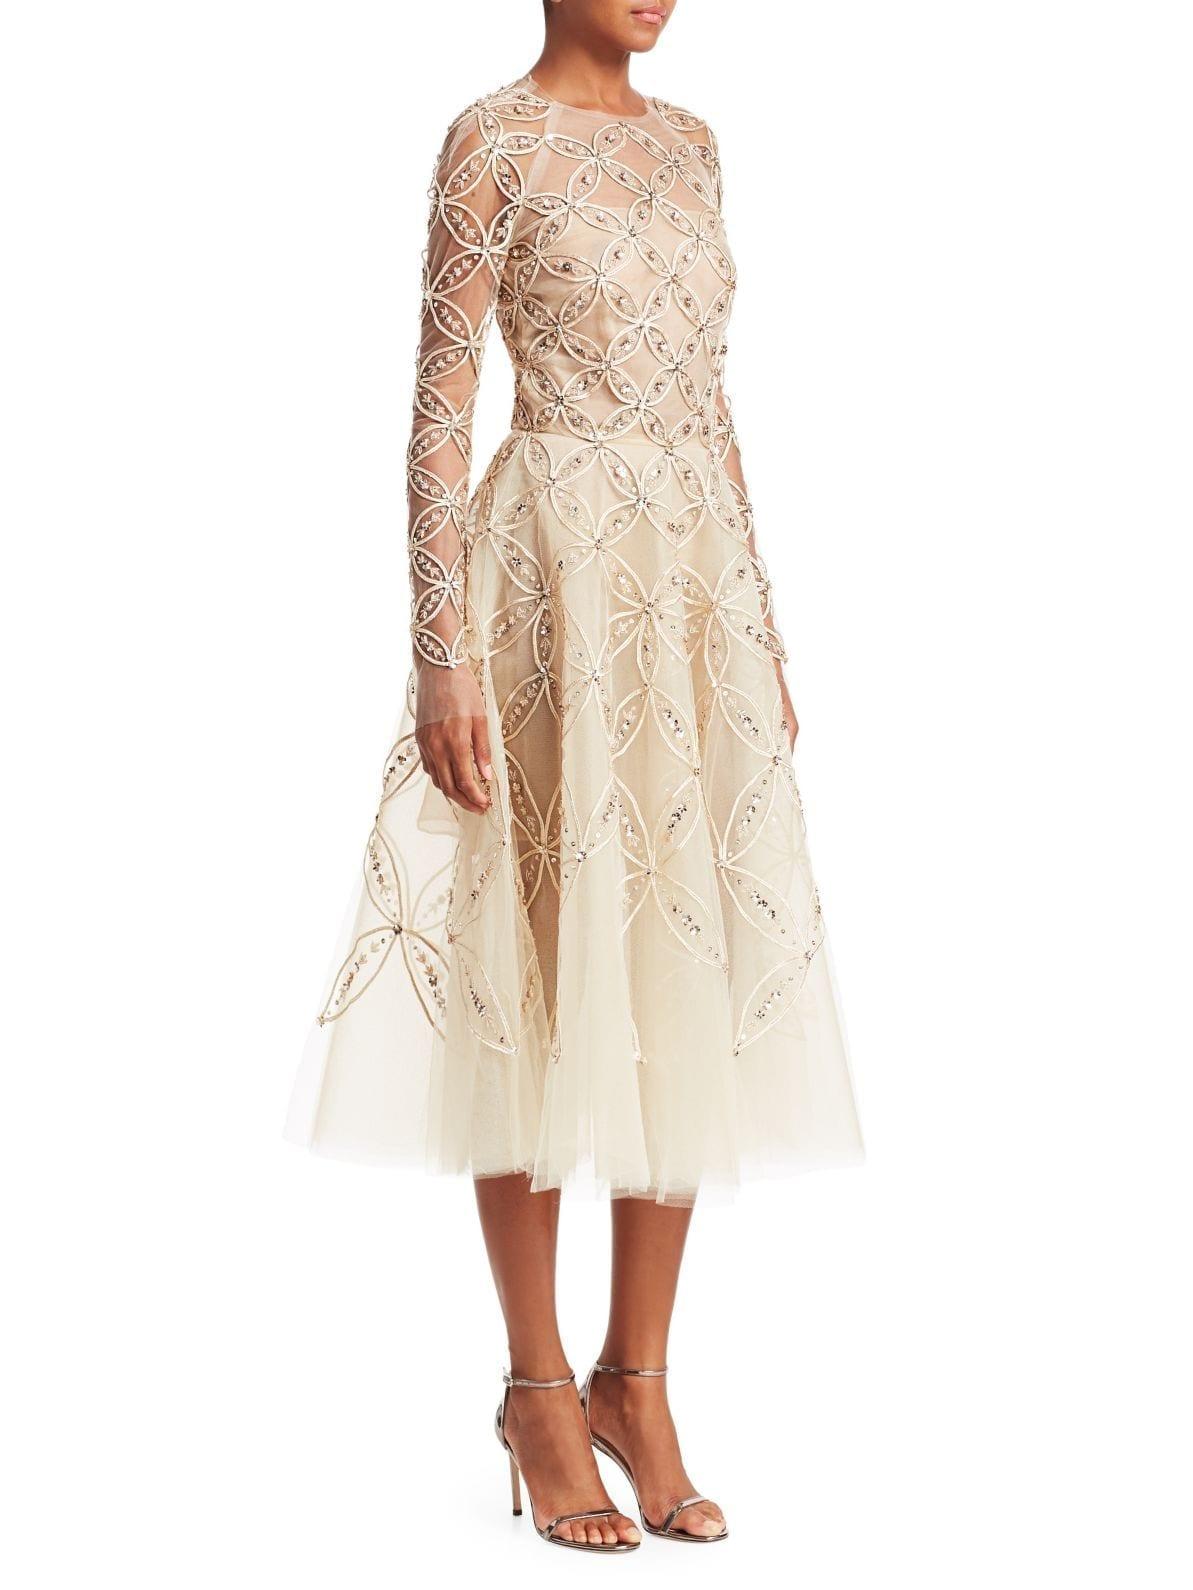 80e89eacdec42 OSCAR DE LA RENTA Long Sleeve Embroidered Illusion A-Line Beige Dress